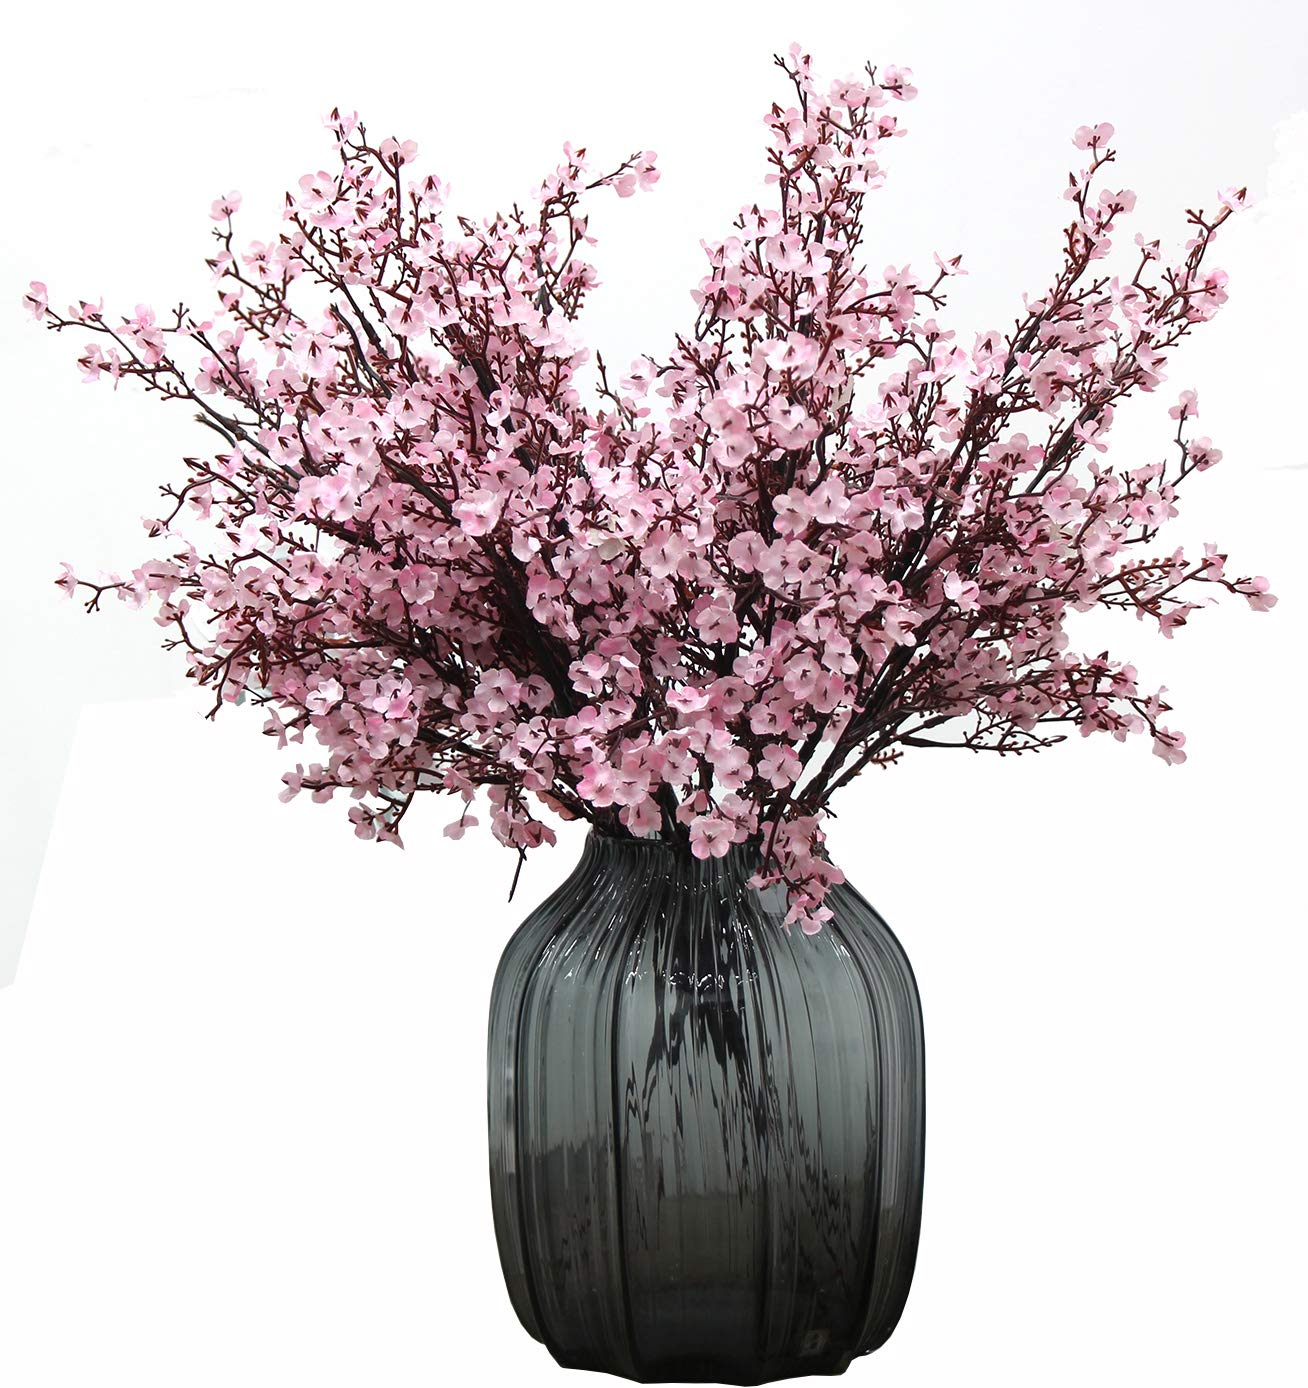 JAKY Global Babys Breath Fabric Cloth Artificial Flowers 6 Bundle European Fake Silk Plants Decor Wedding Party Decoration Bouquets Real Touch DIY Home Garden (Light Pink-6pcs)